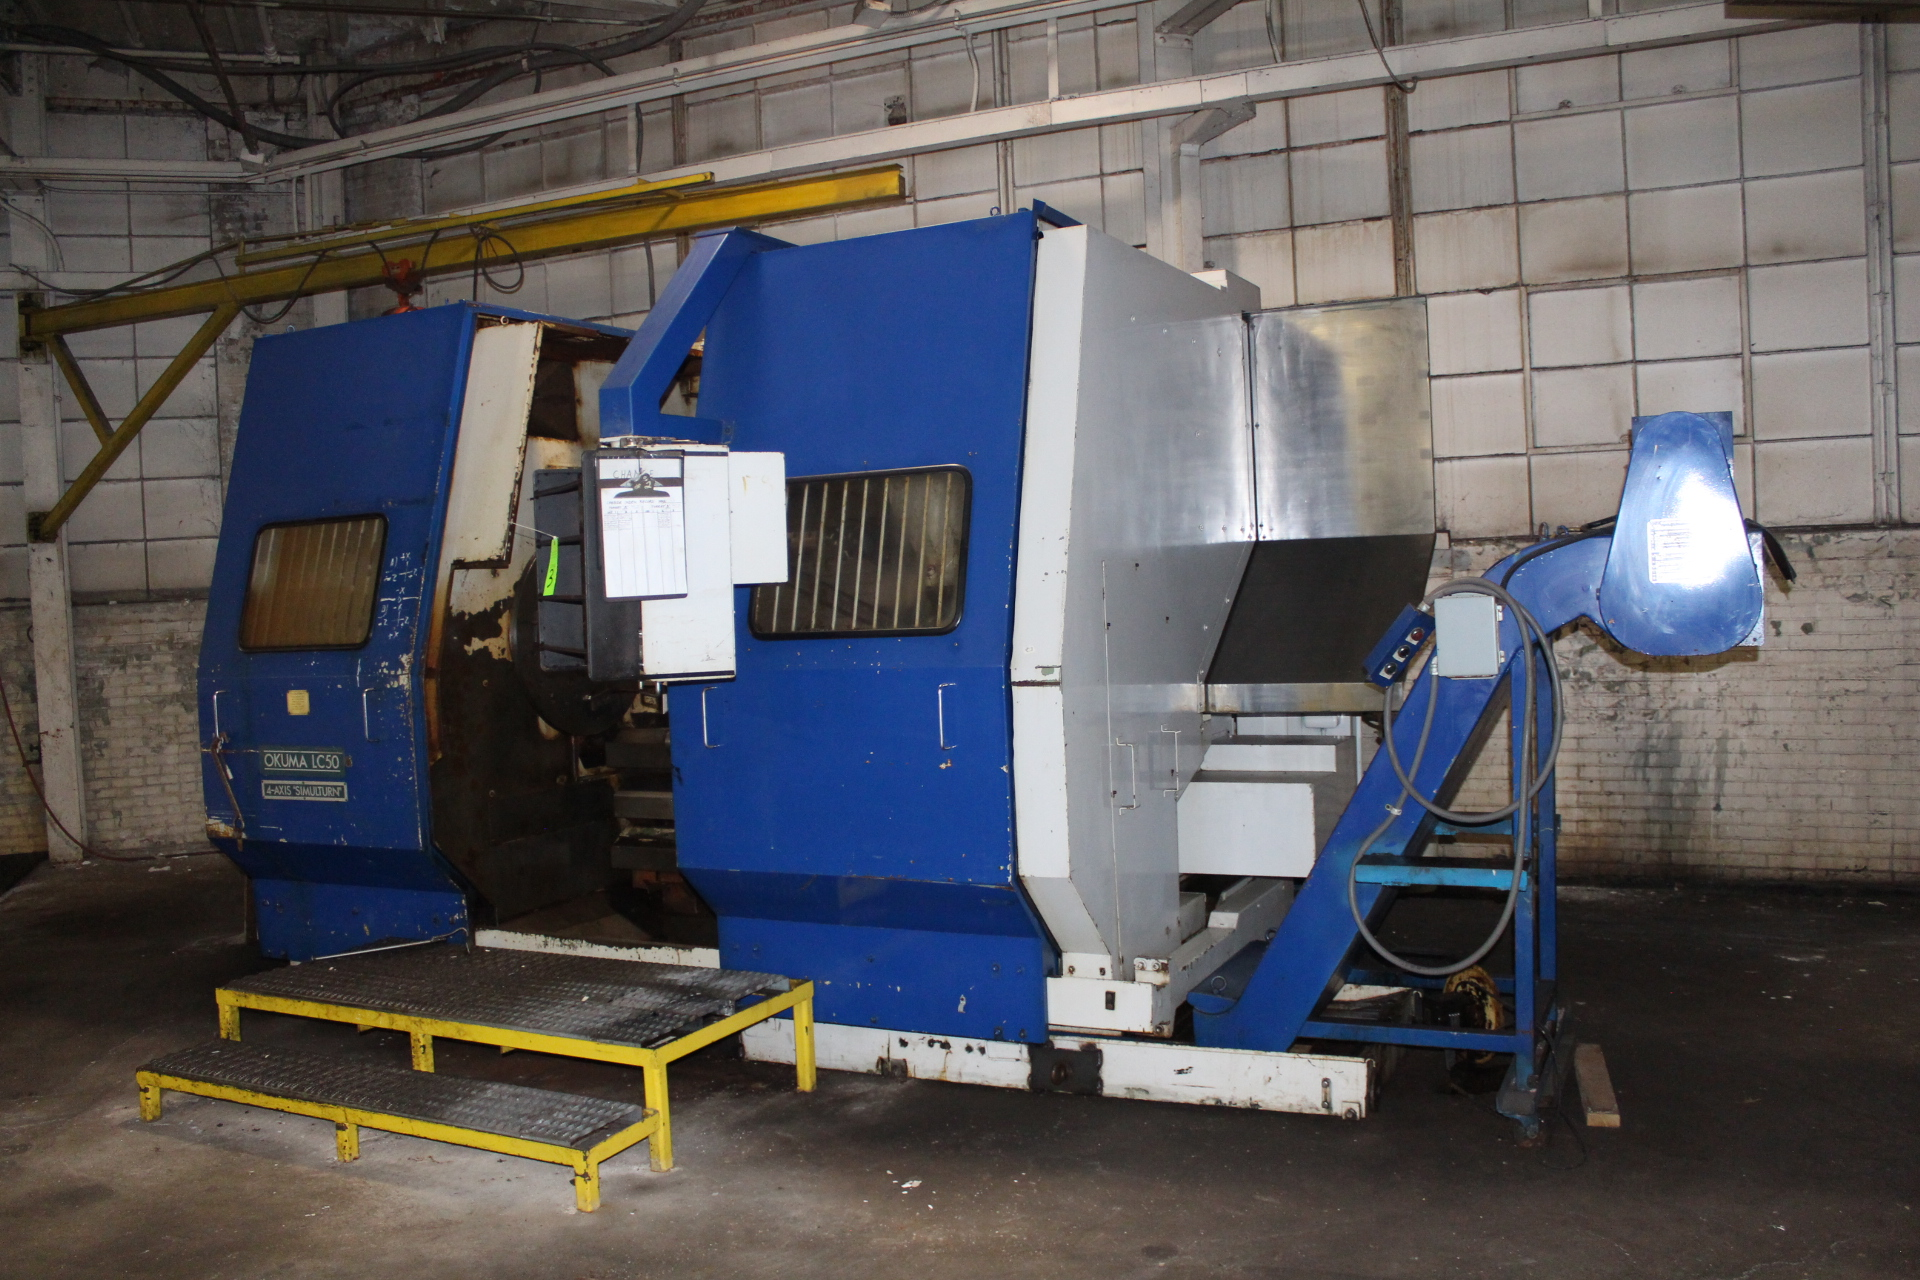 Lot 3 - Okuma LC50-2ST Simulturn 4-Axis CNC Turning Center